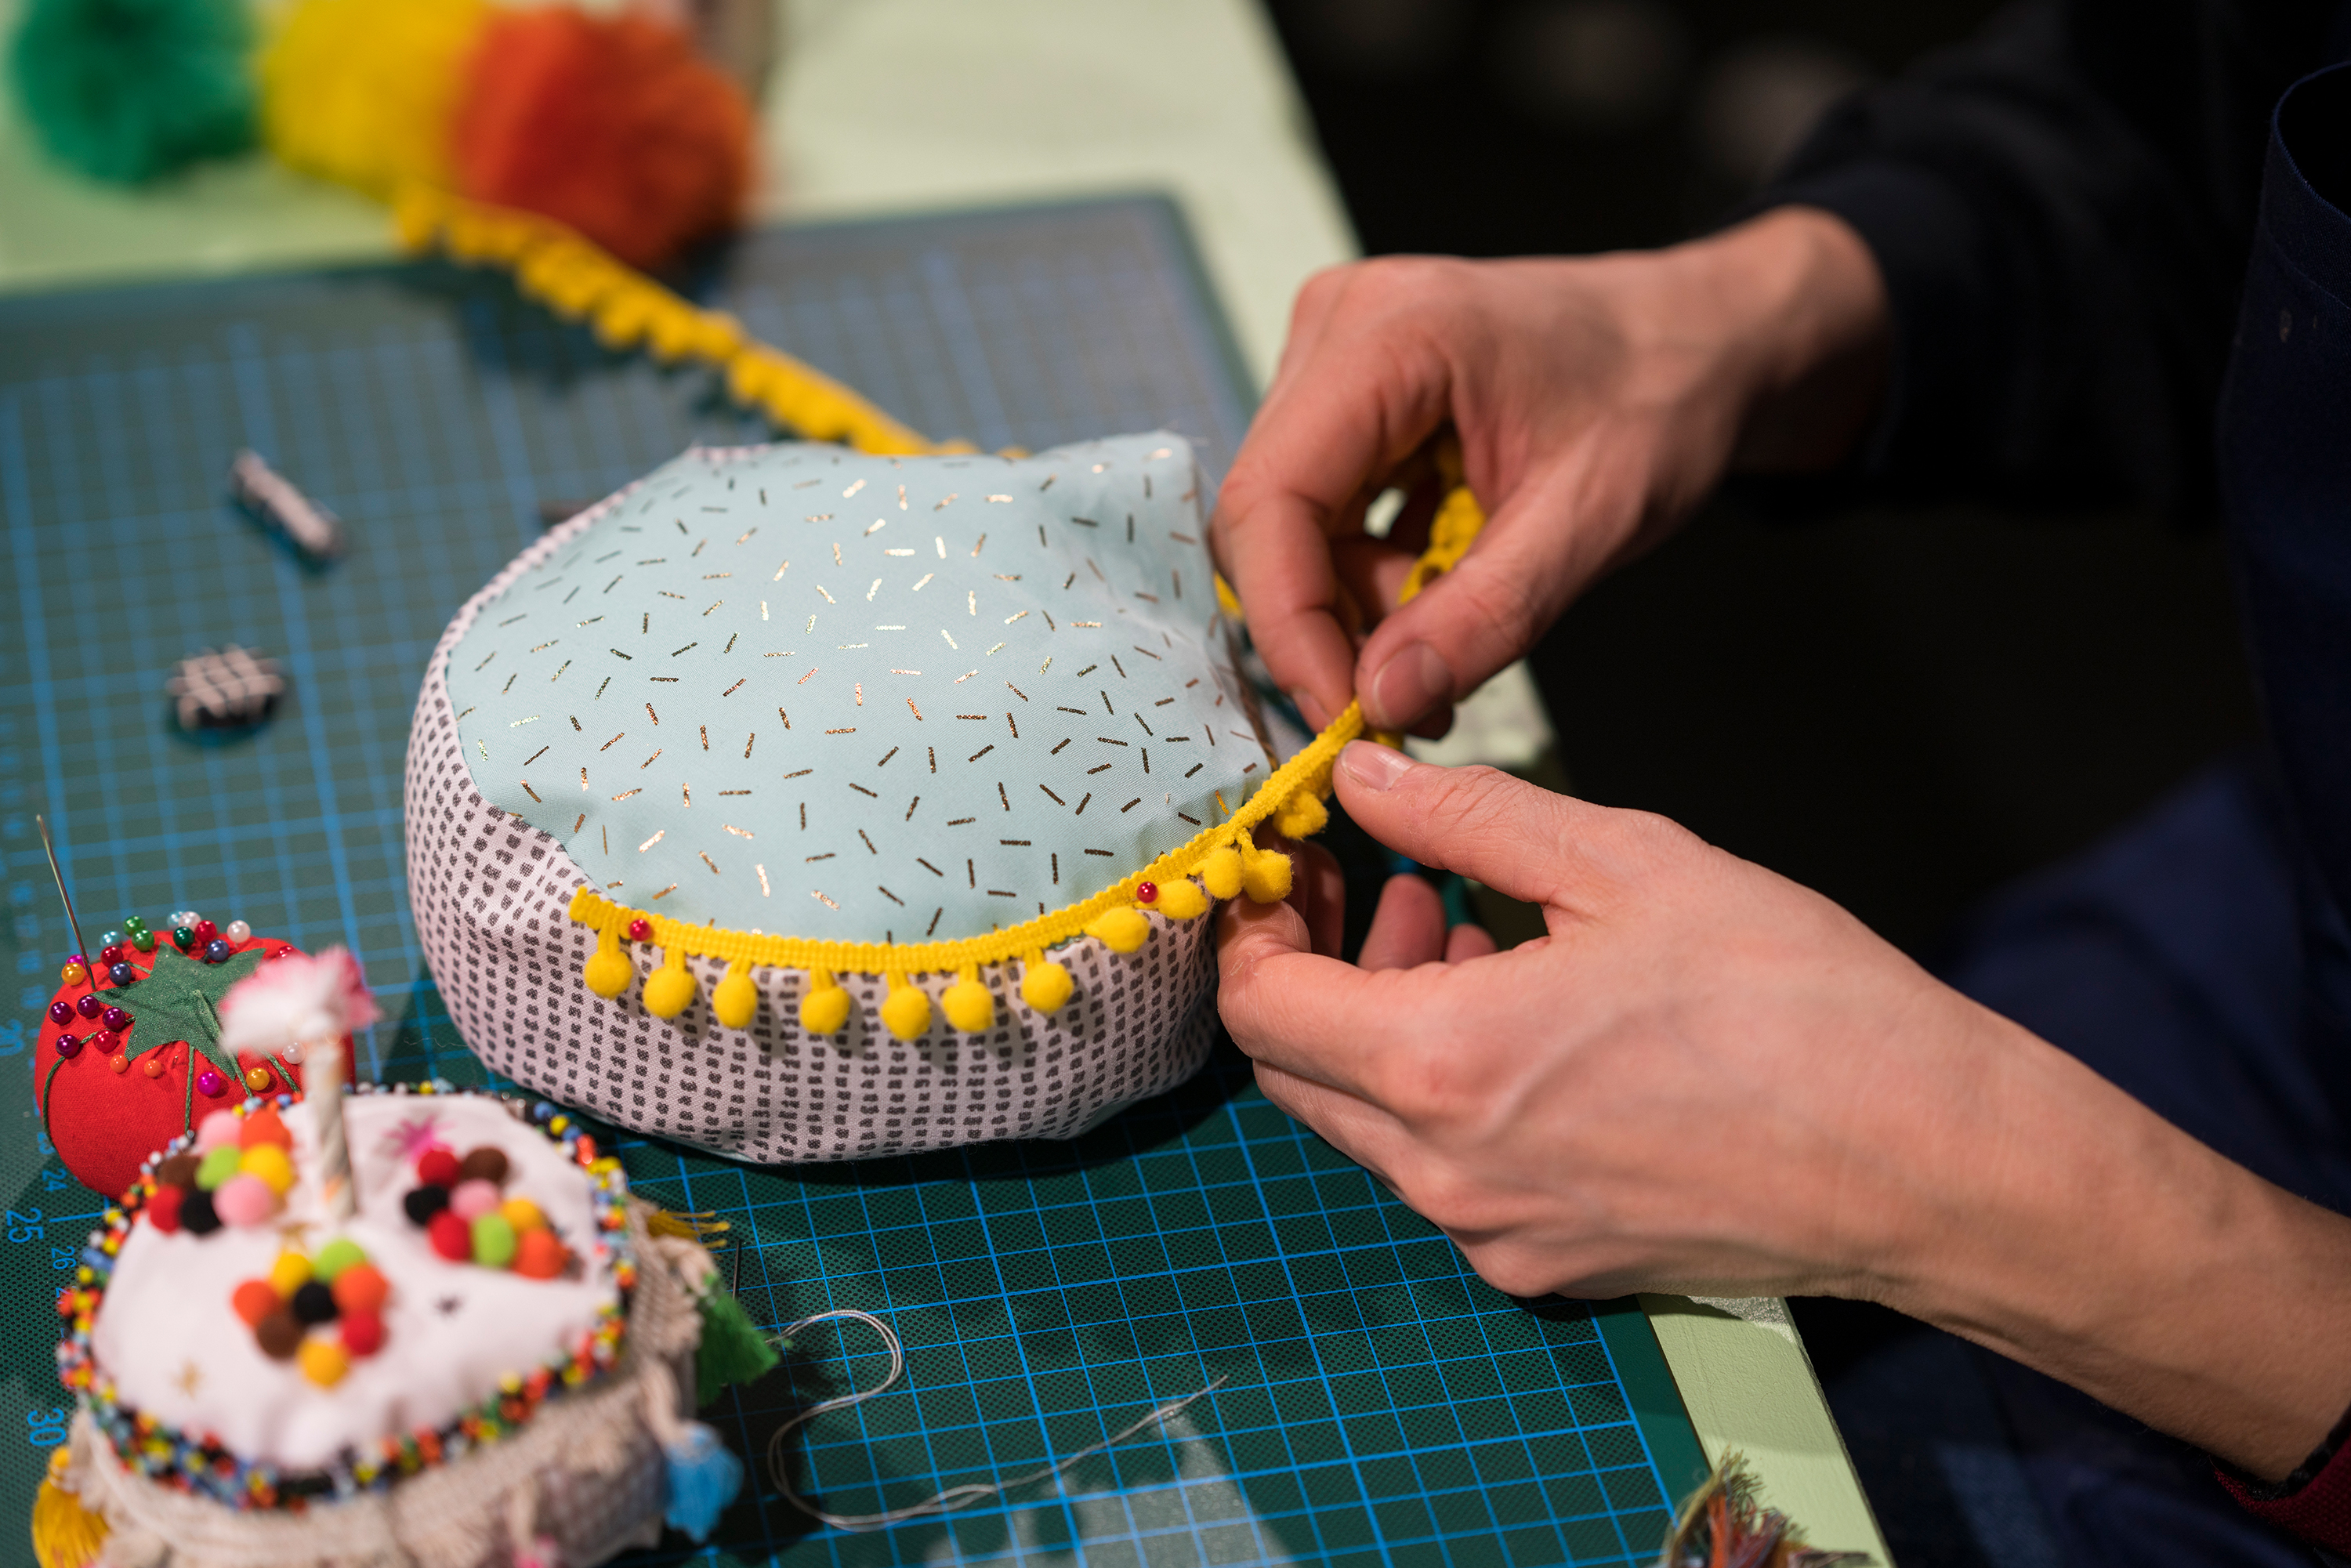 Woman is making a cake out of fabric